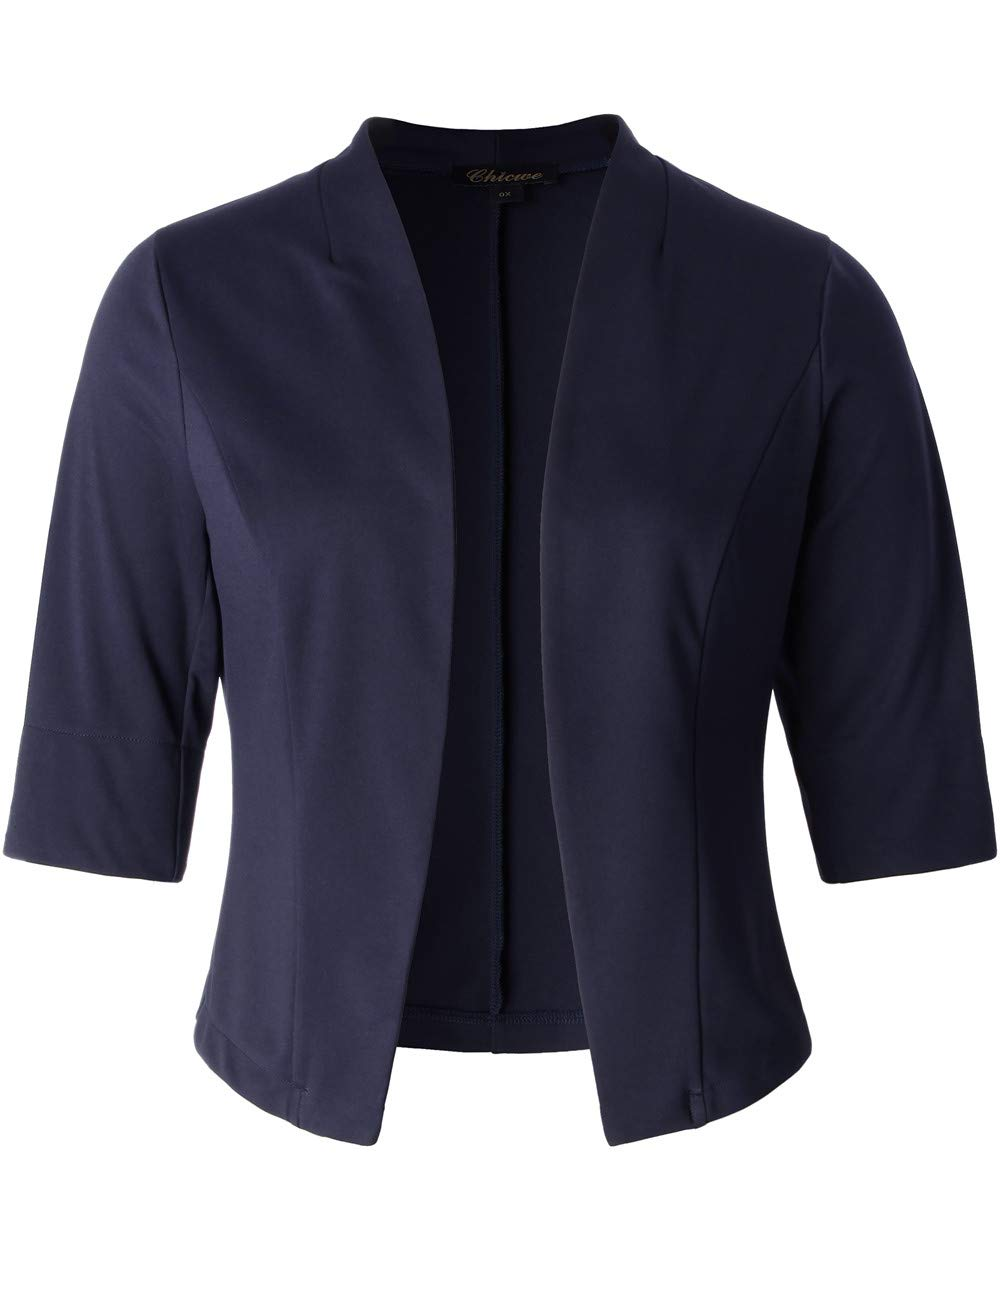 Chicwe Women's Stretch Modern Front Open Plus Size Crop Jacket Navy 2X